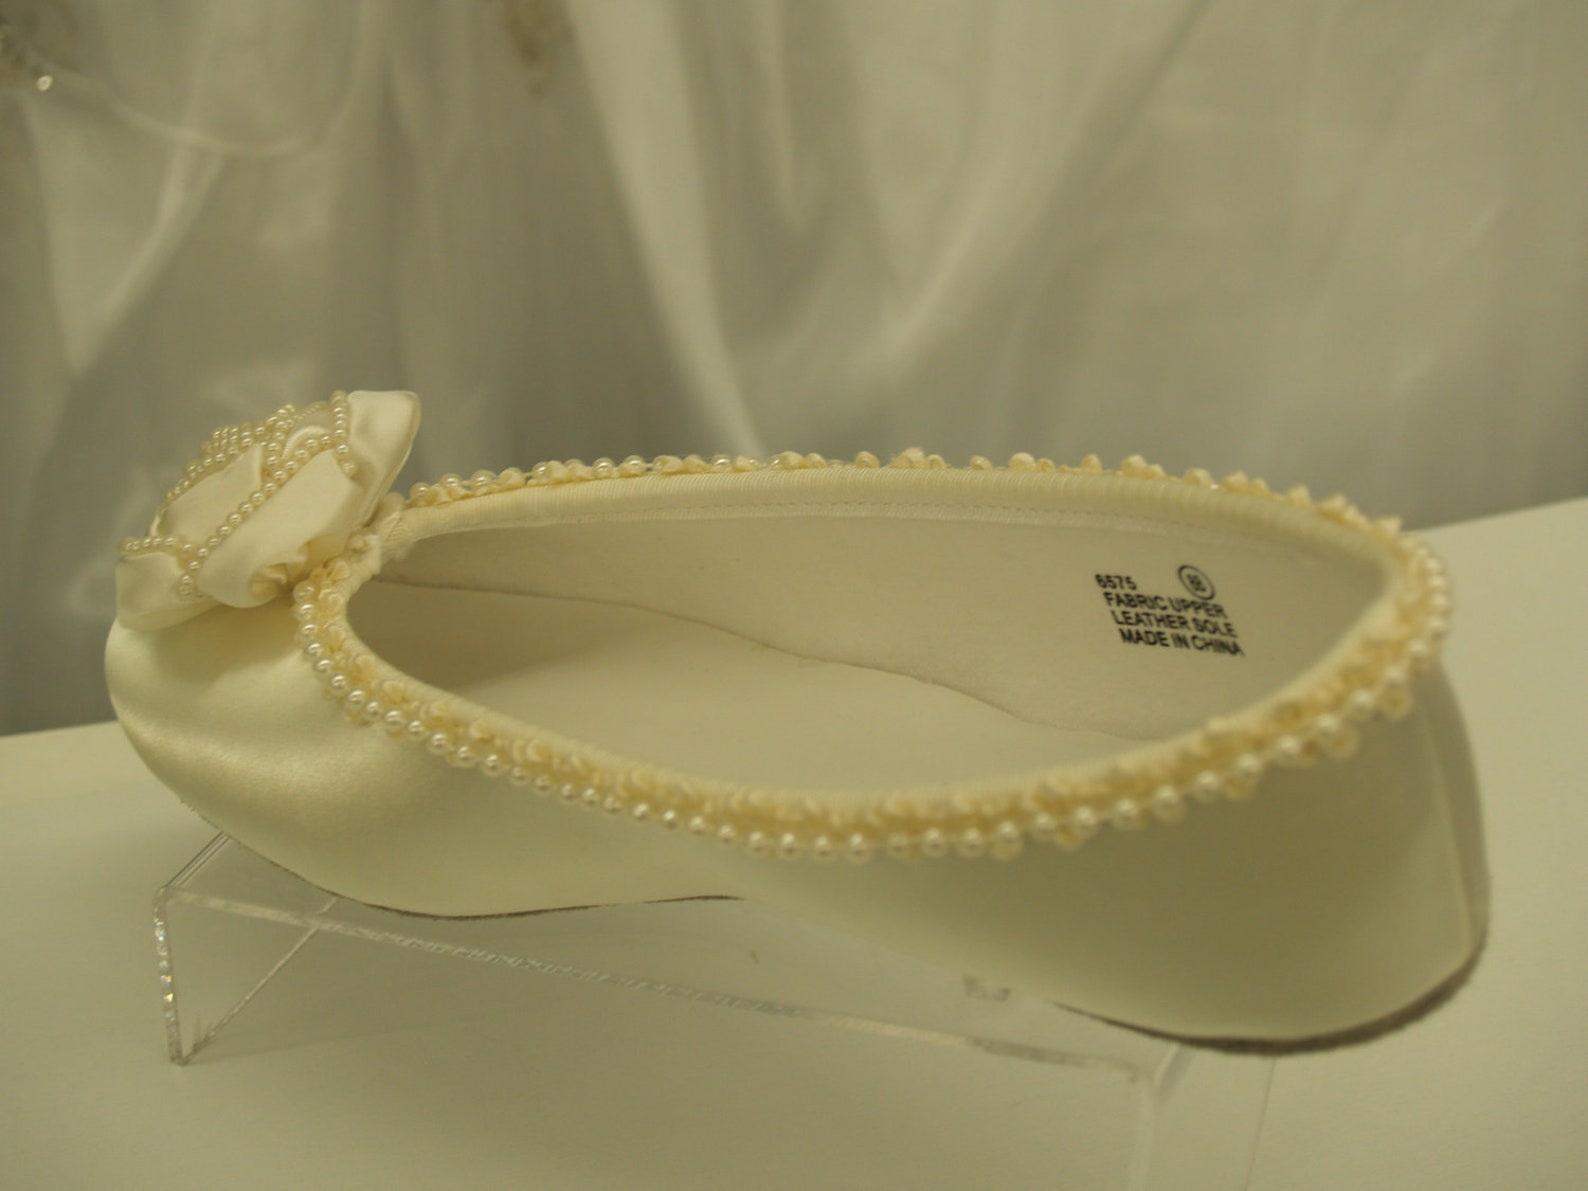 wedding ivory flats fancy pearls satin rossette, ballet style slipper, comfortable ivory shoes, fabric rose, pearl trimmed, sati